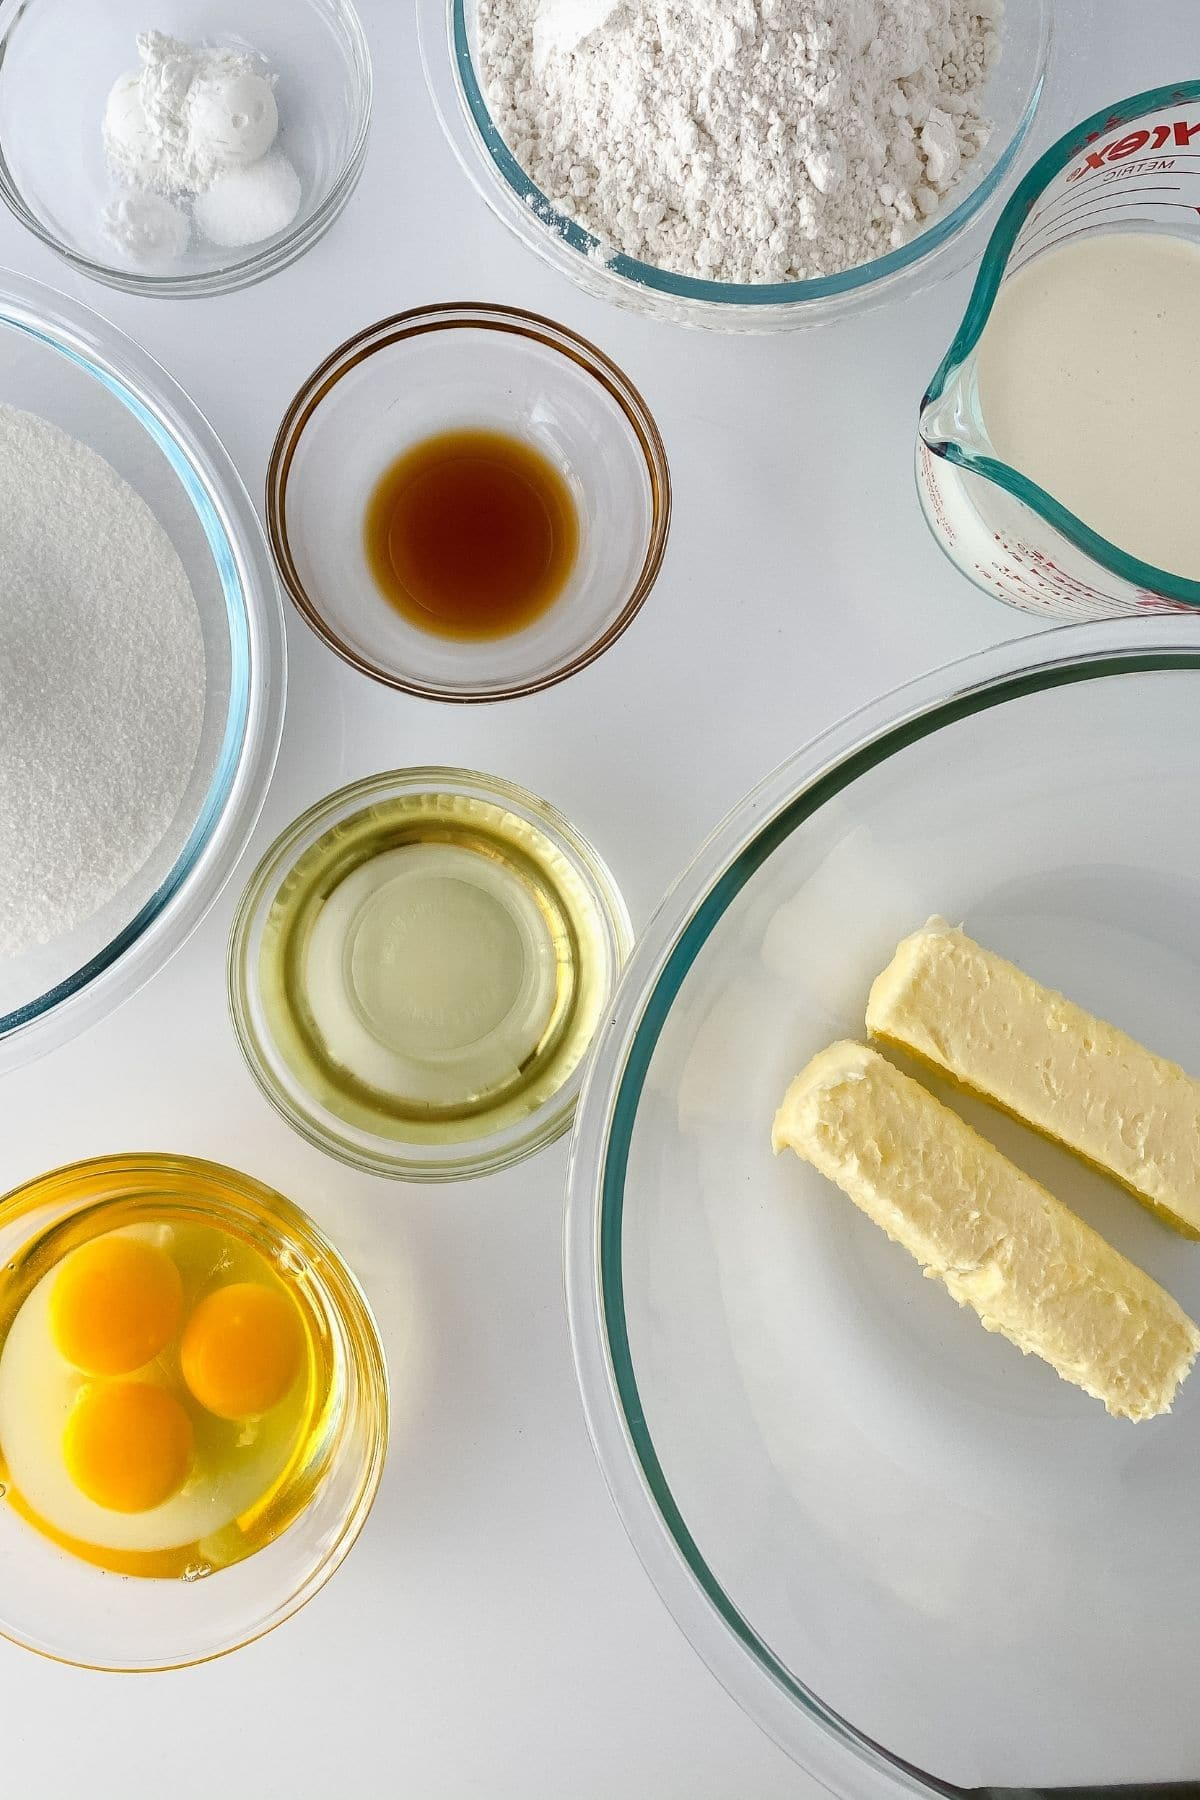 Ingredients for vanilla cake in glass bowls